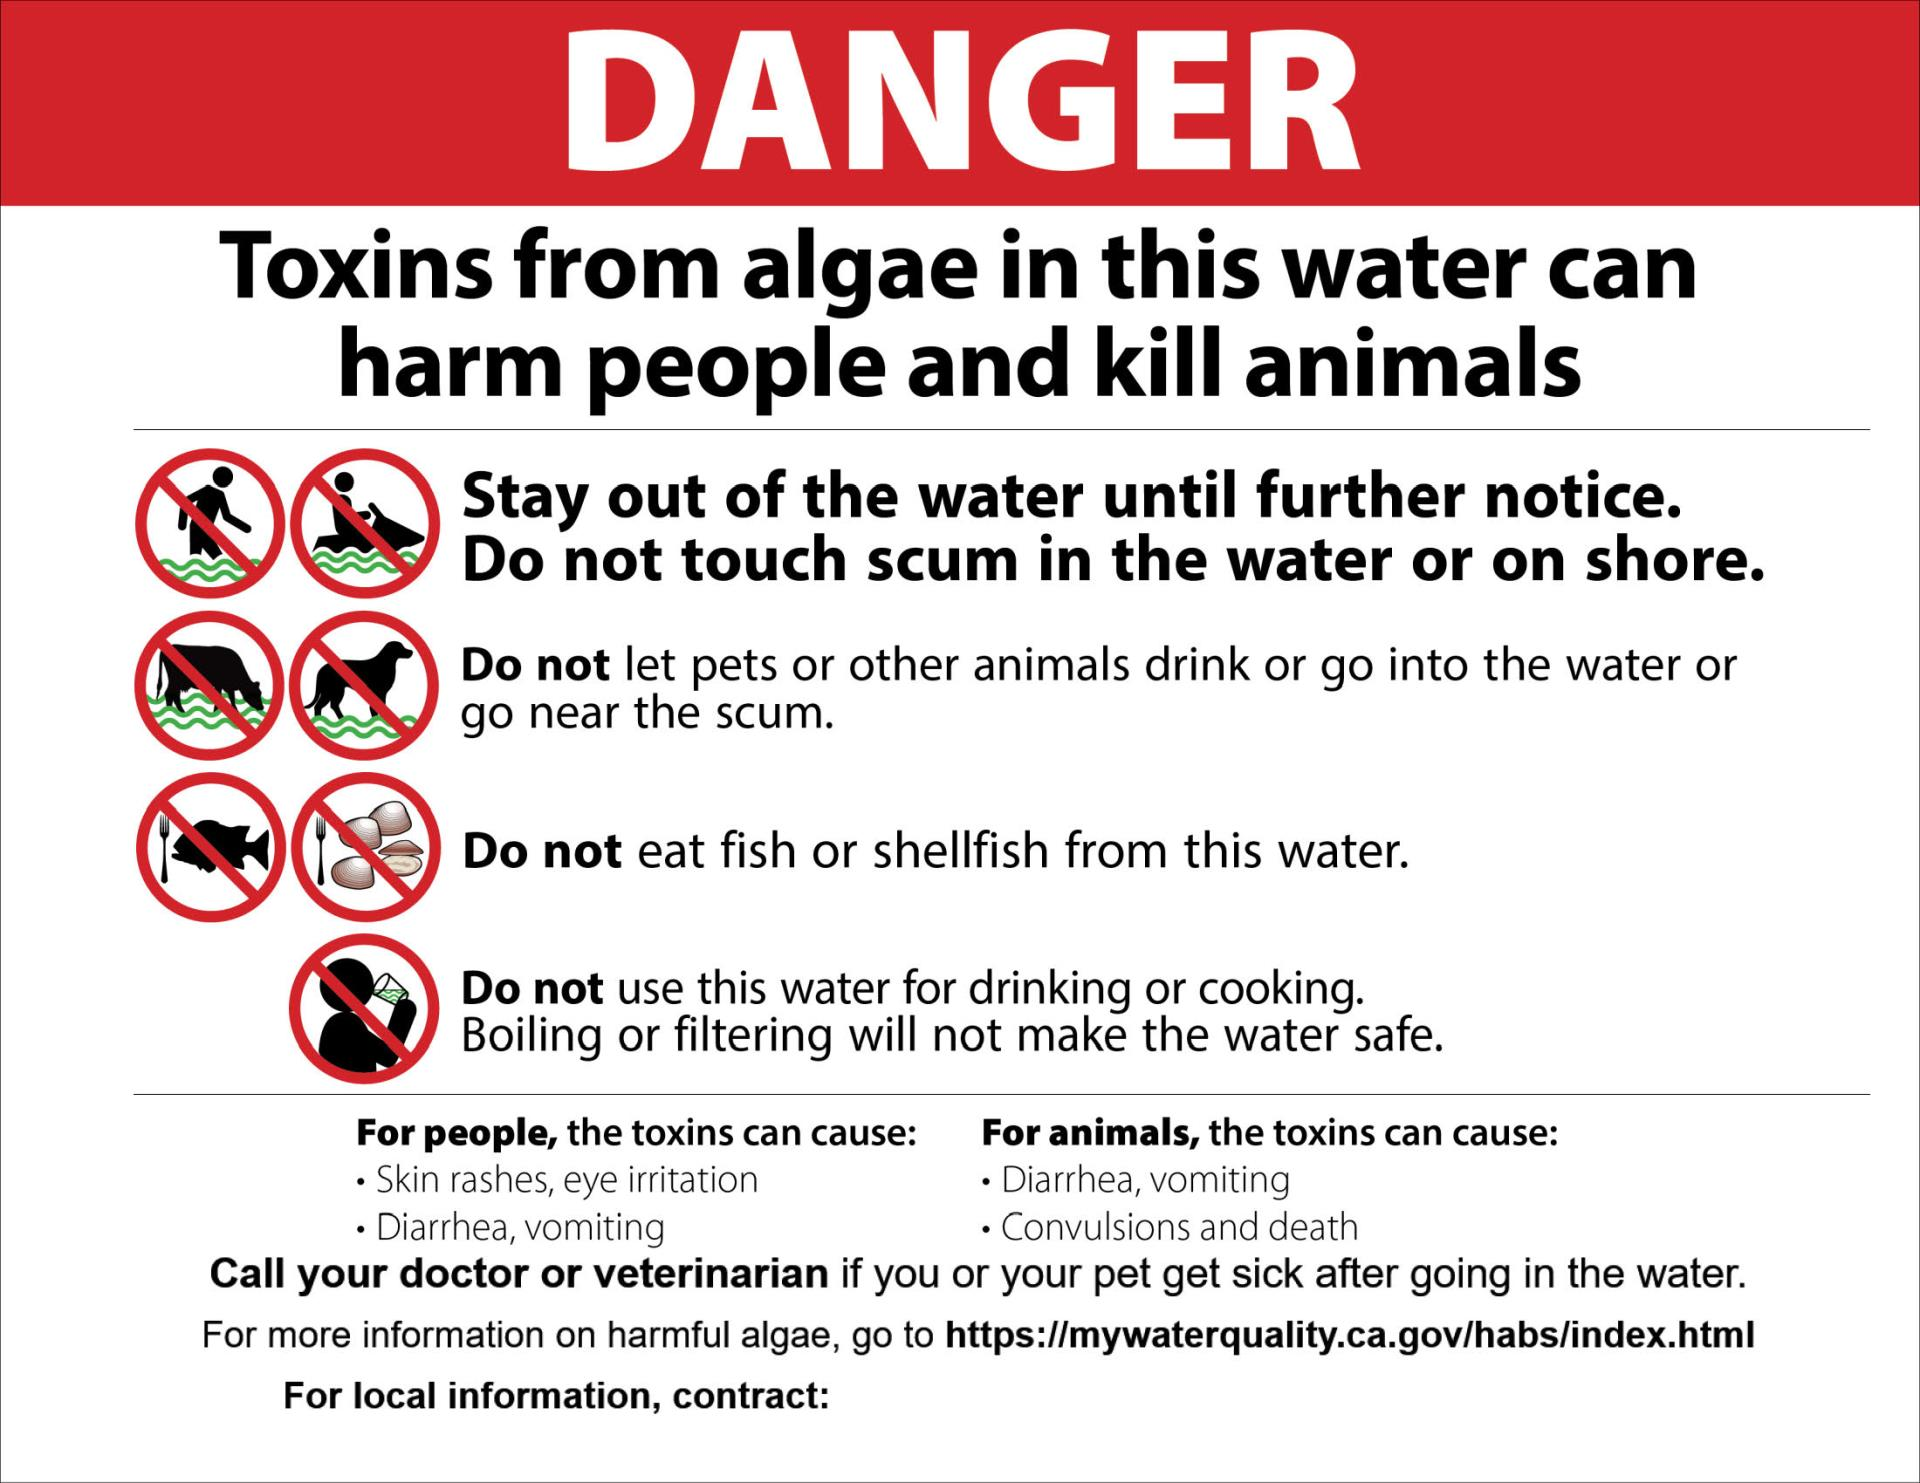 Danger Toxins from algae in this water can harm people and kill animals